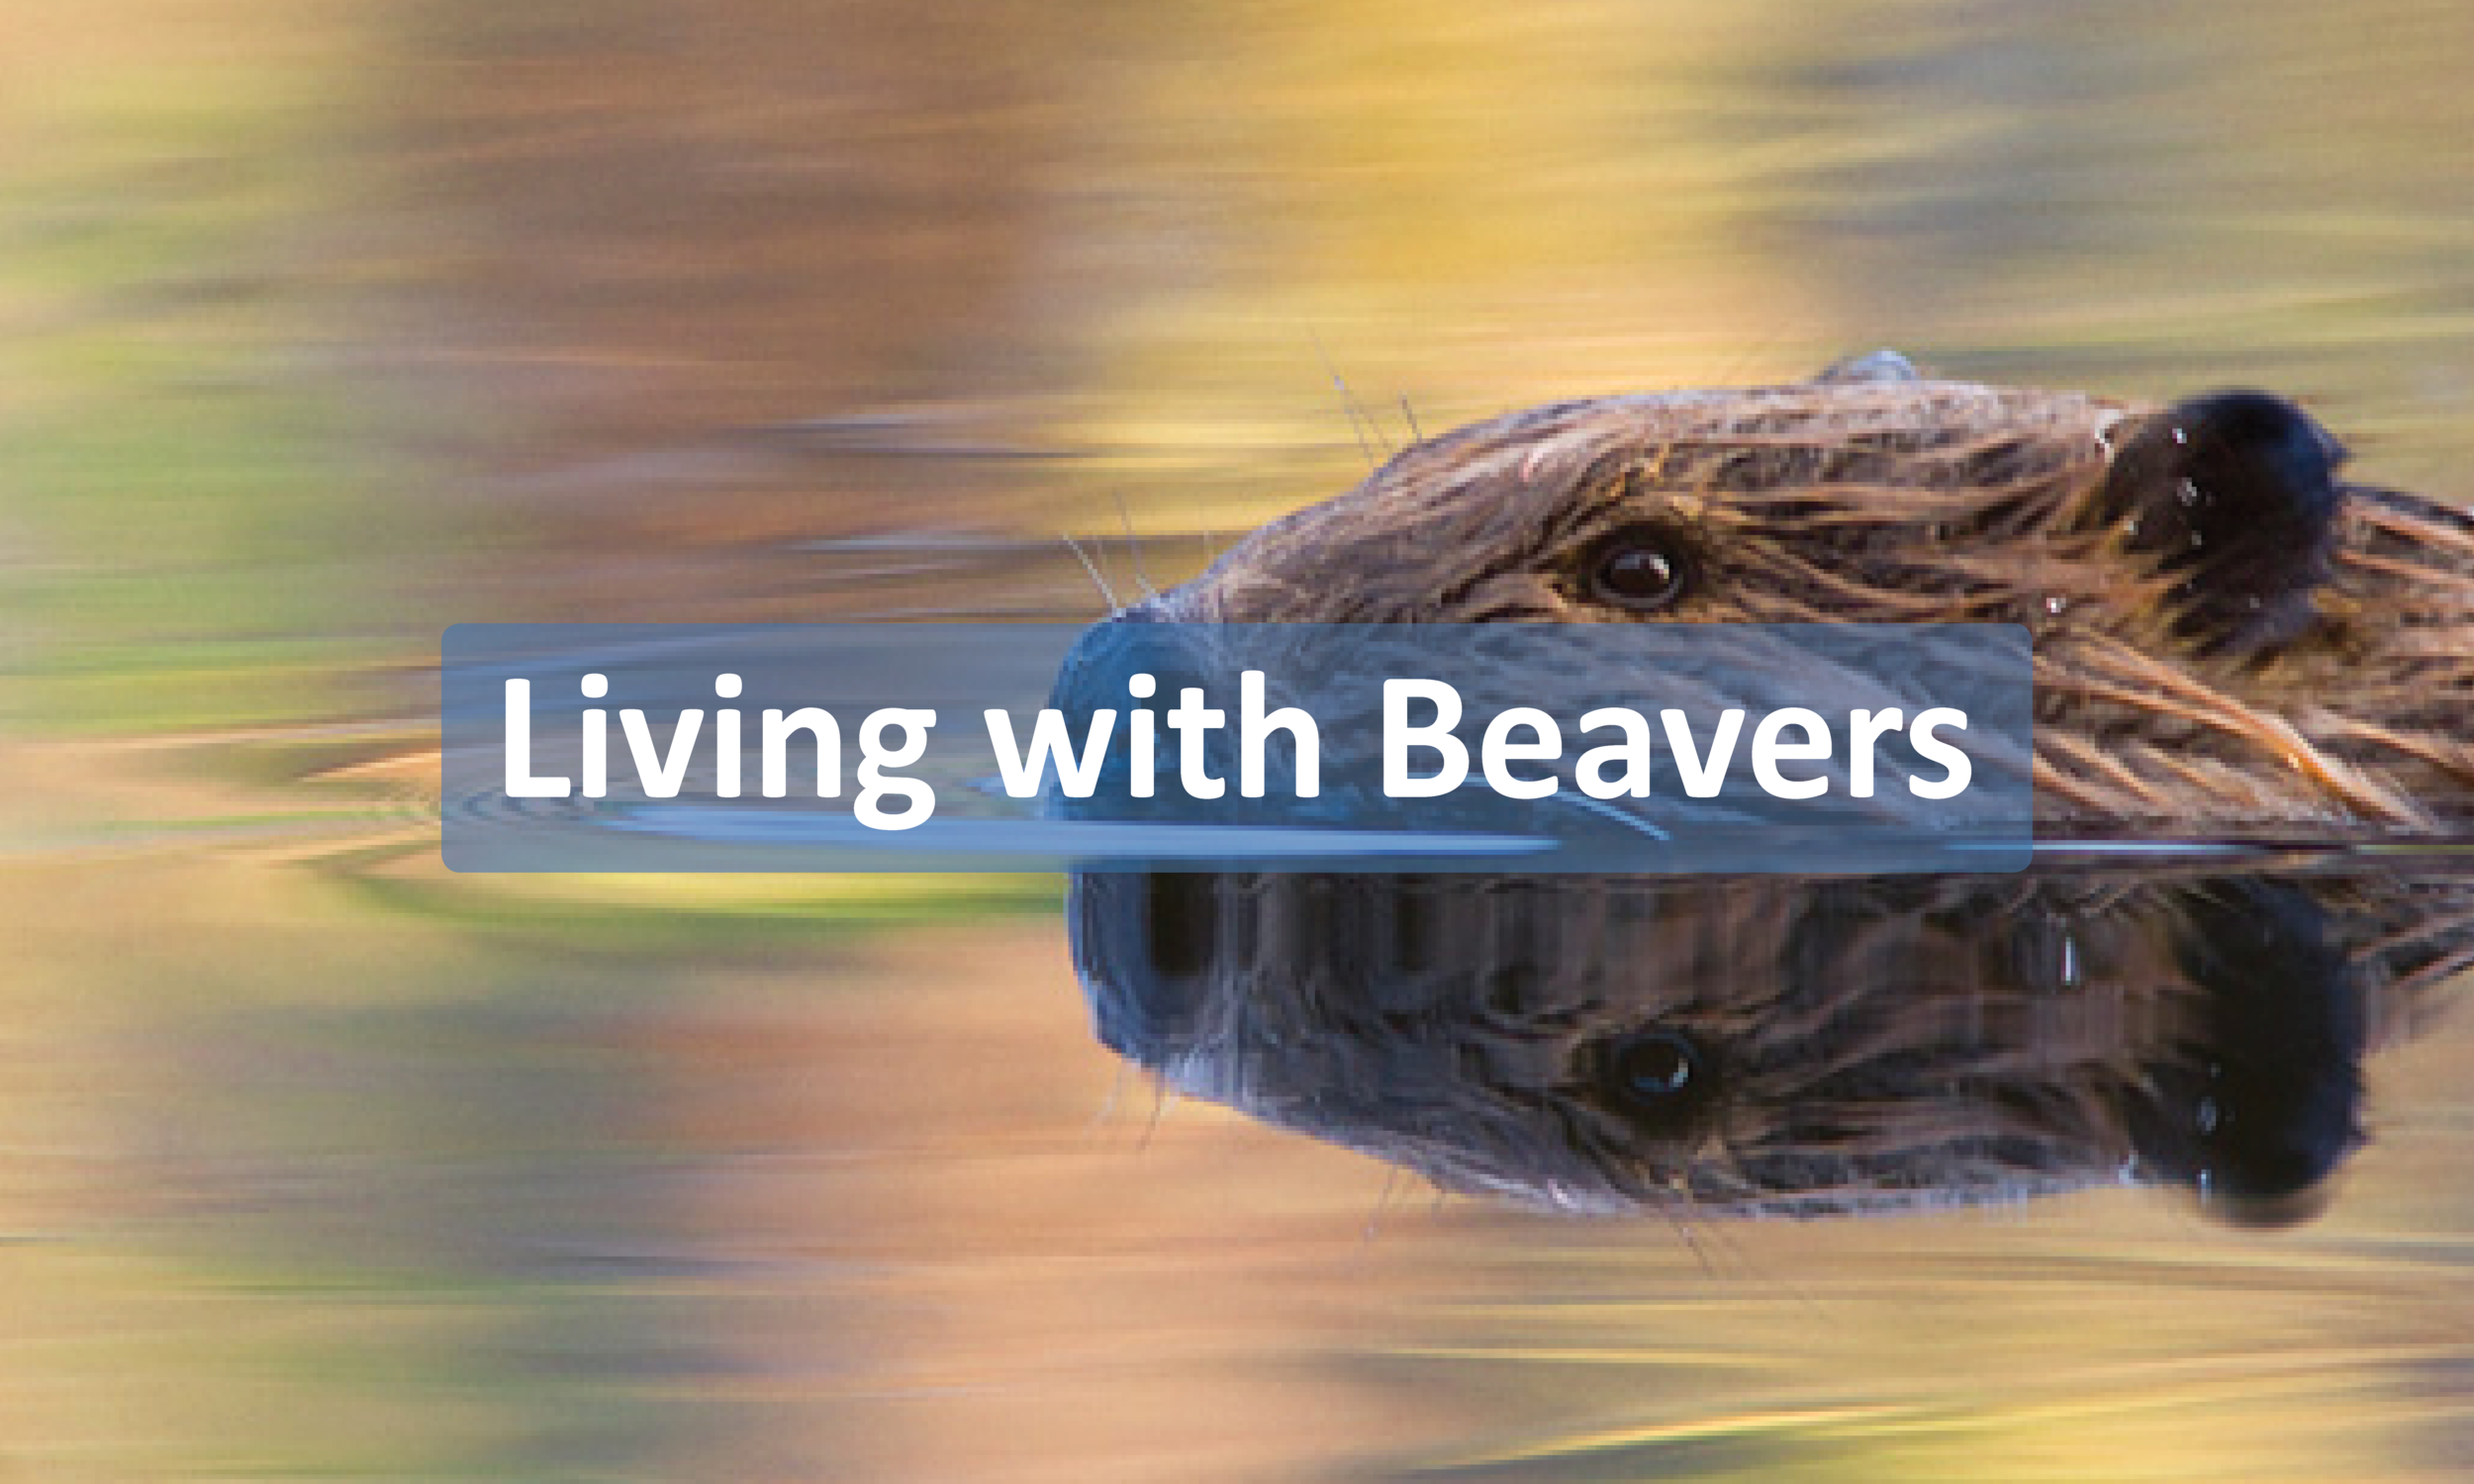 LivingwithBeavers-button.png